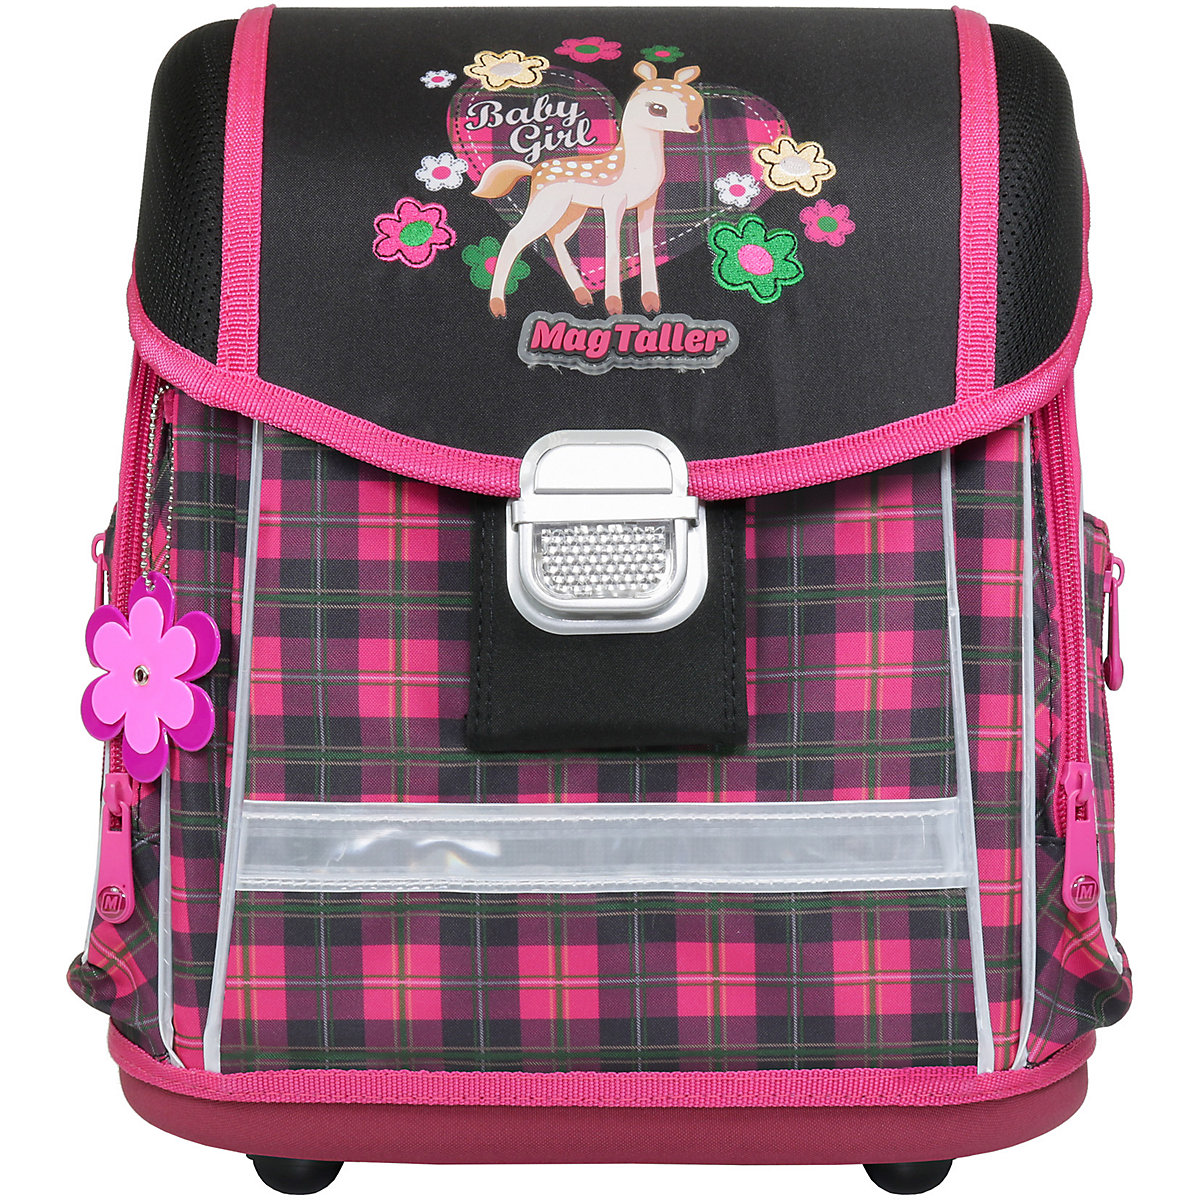 School Bags MAGTALLER 11154914 schoolbag backpack knapsacks orthopedic bag for boy and girl animals flower sprints стоимость